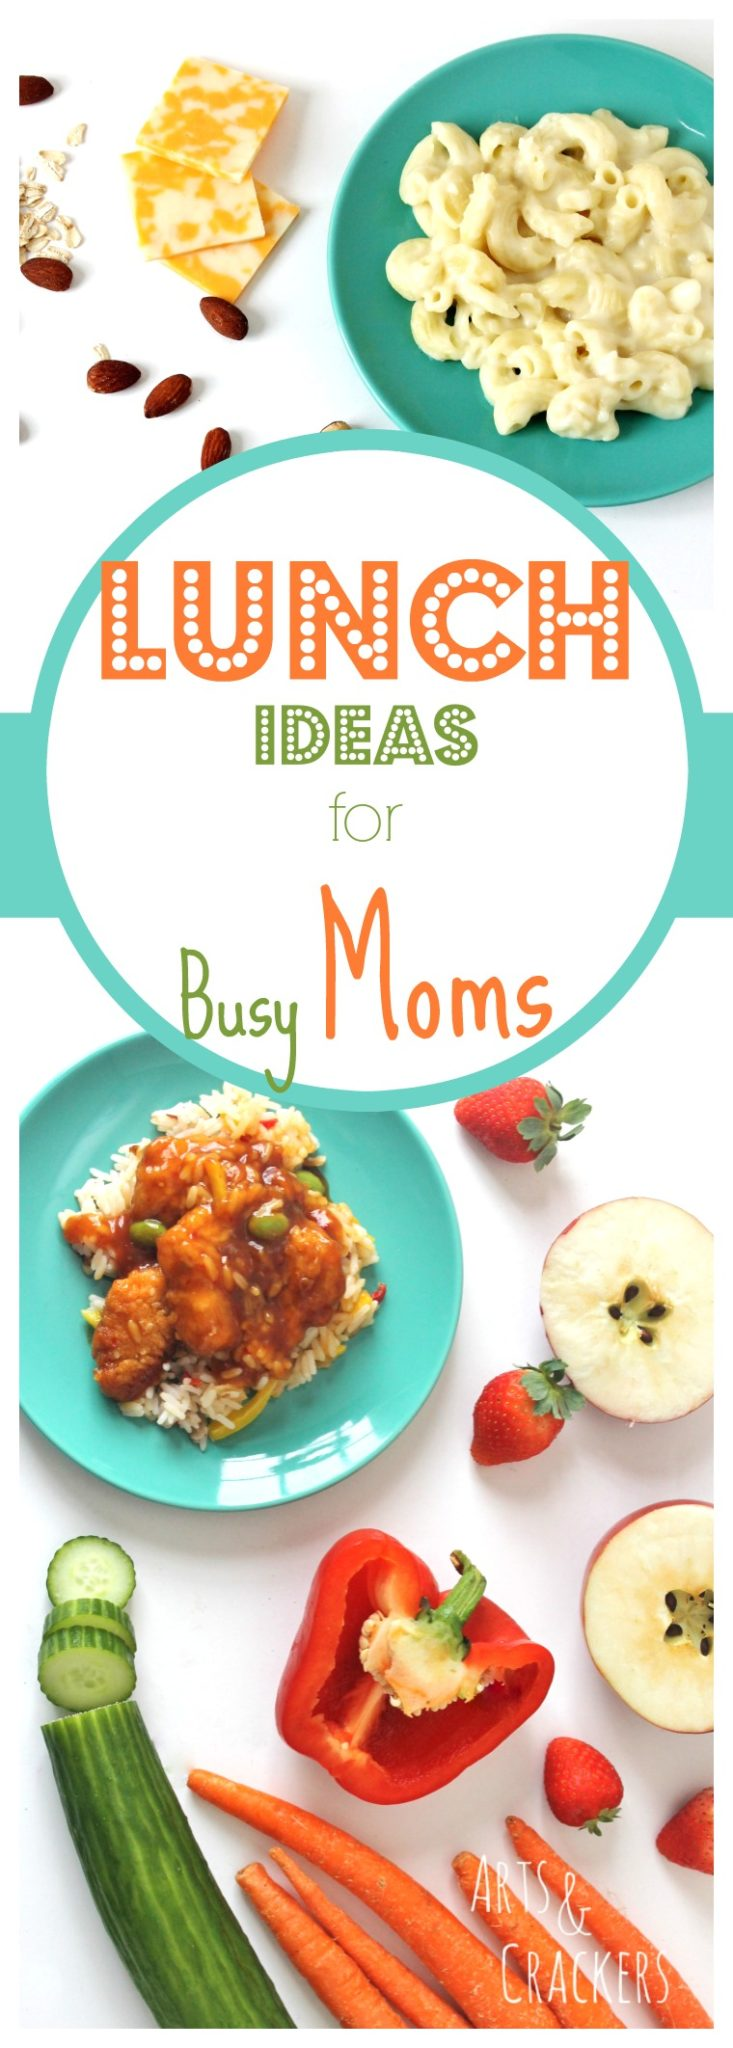 You're a busy mom; it's easy to take care of your kids and forget to eat lunch yourself. Your health and wellness is important, so here is a list with quick and easy lunch ideas for busy moms (and dads) to get a balanced and complete lunch with the help of LEAN CUISINE. #NourishWhatMatters ad